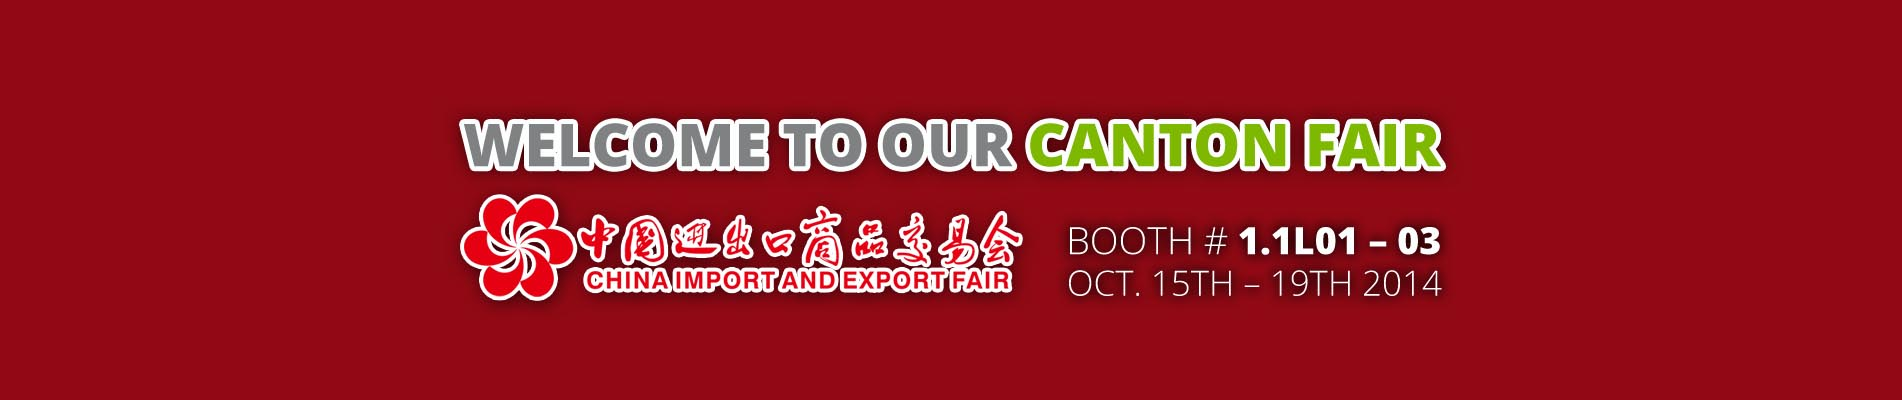 We are in the Canton Fair 116th - Twothousand